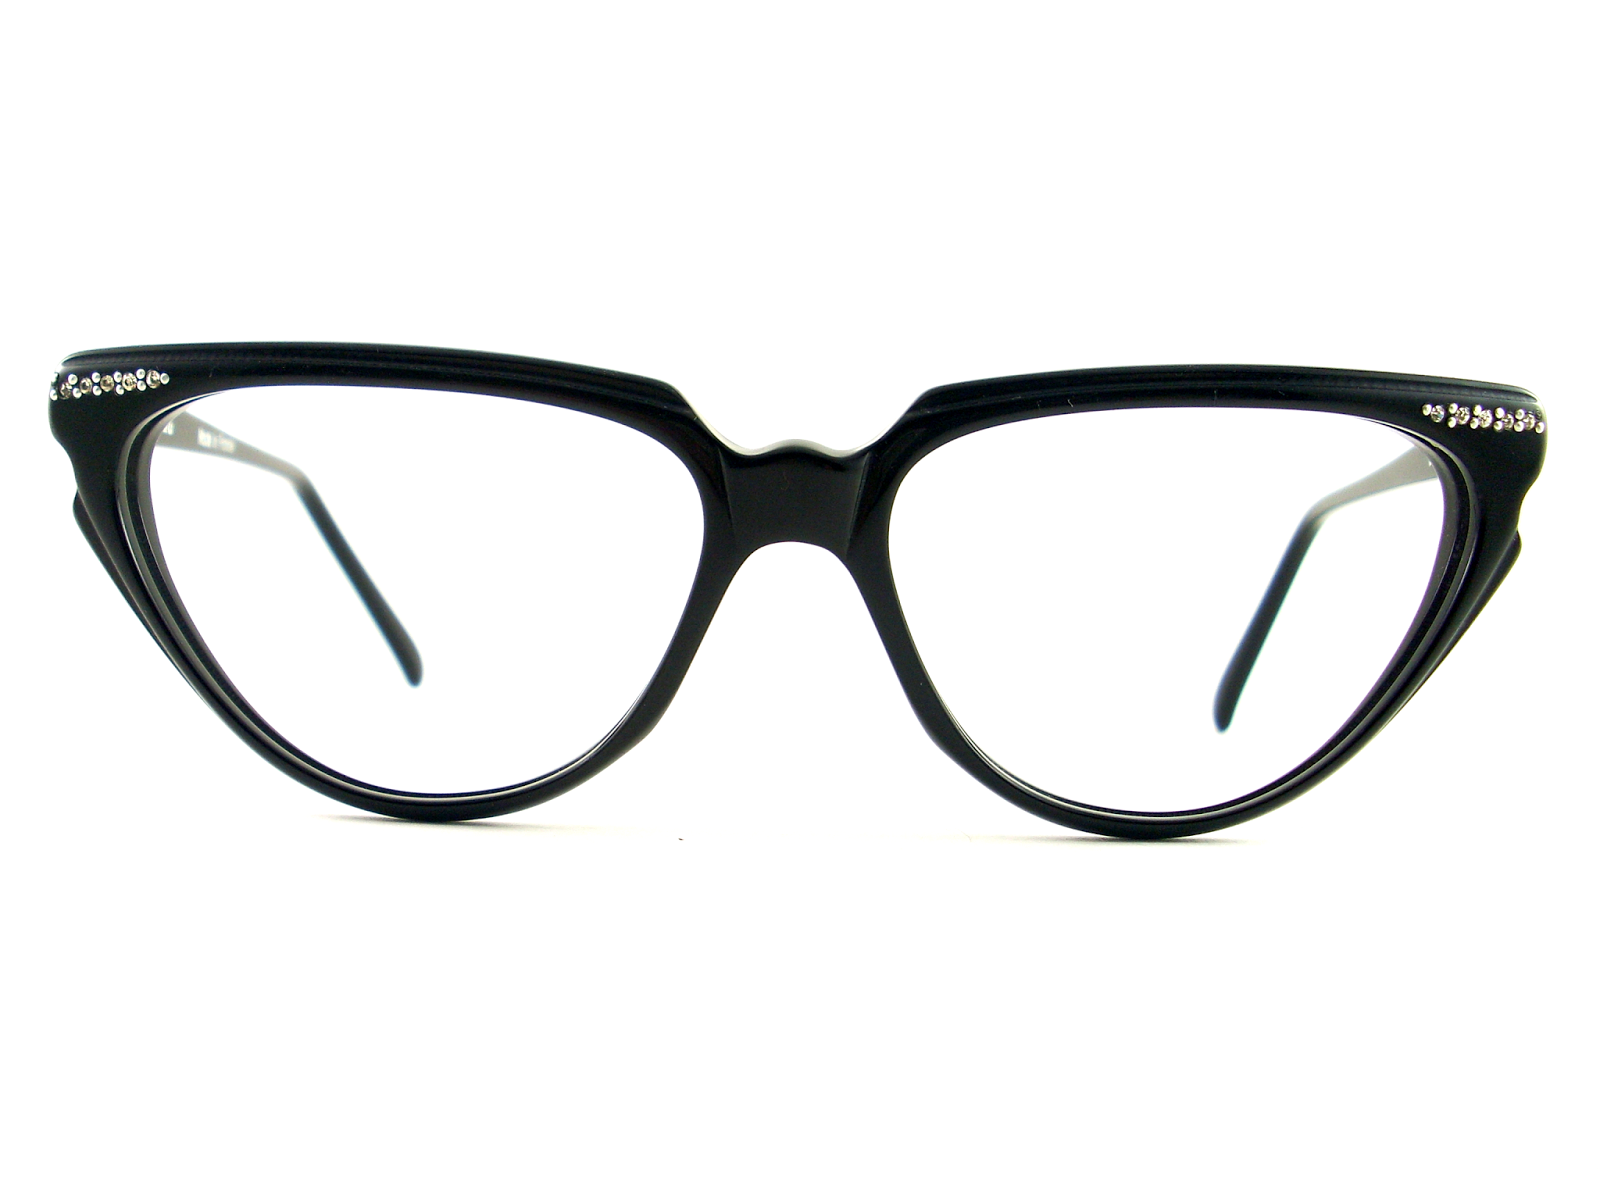 Vintage Eyeglasses Frames Eyewear Sunglasses 50S: April 2015